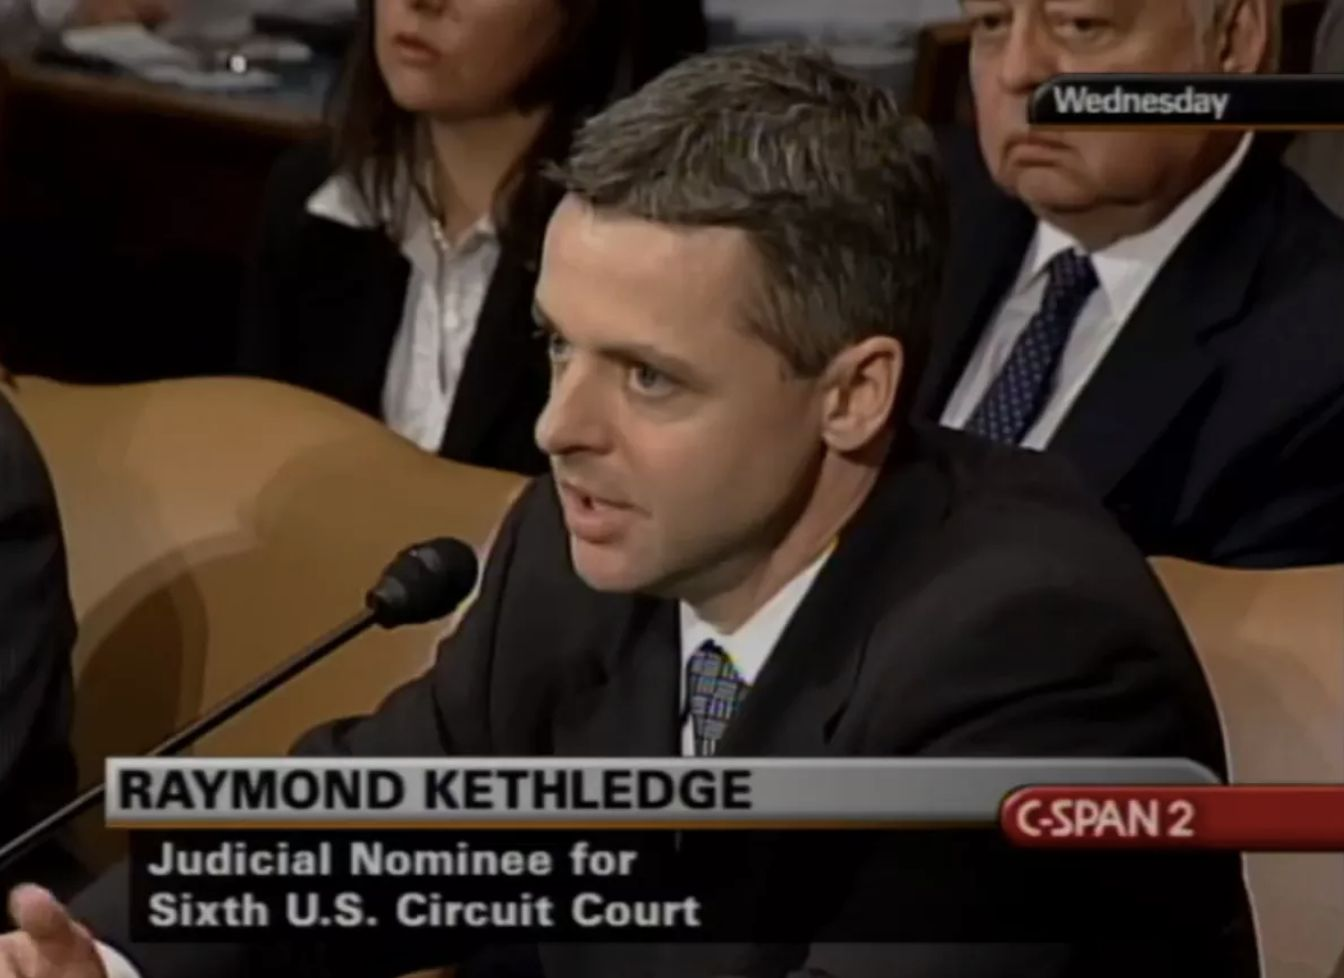 Raymond Kethledge at his Senate confirmation hearing in 2008